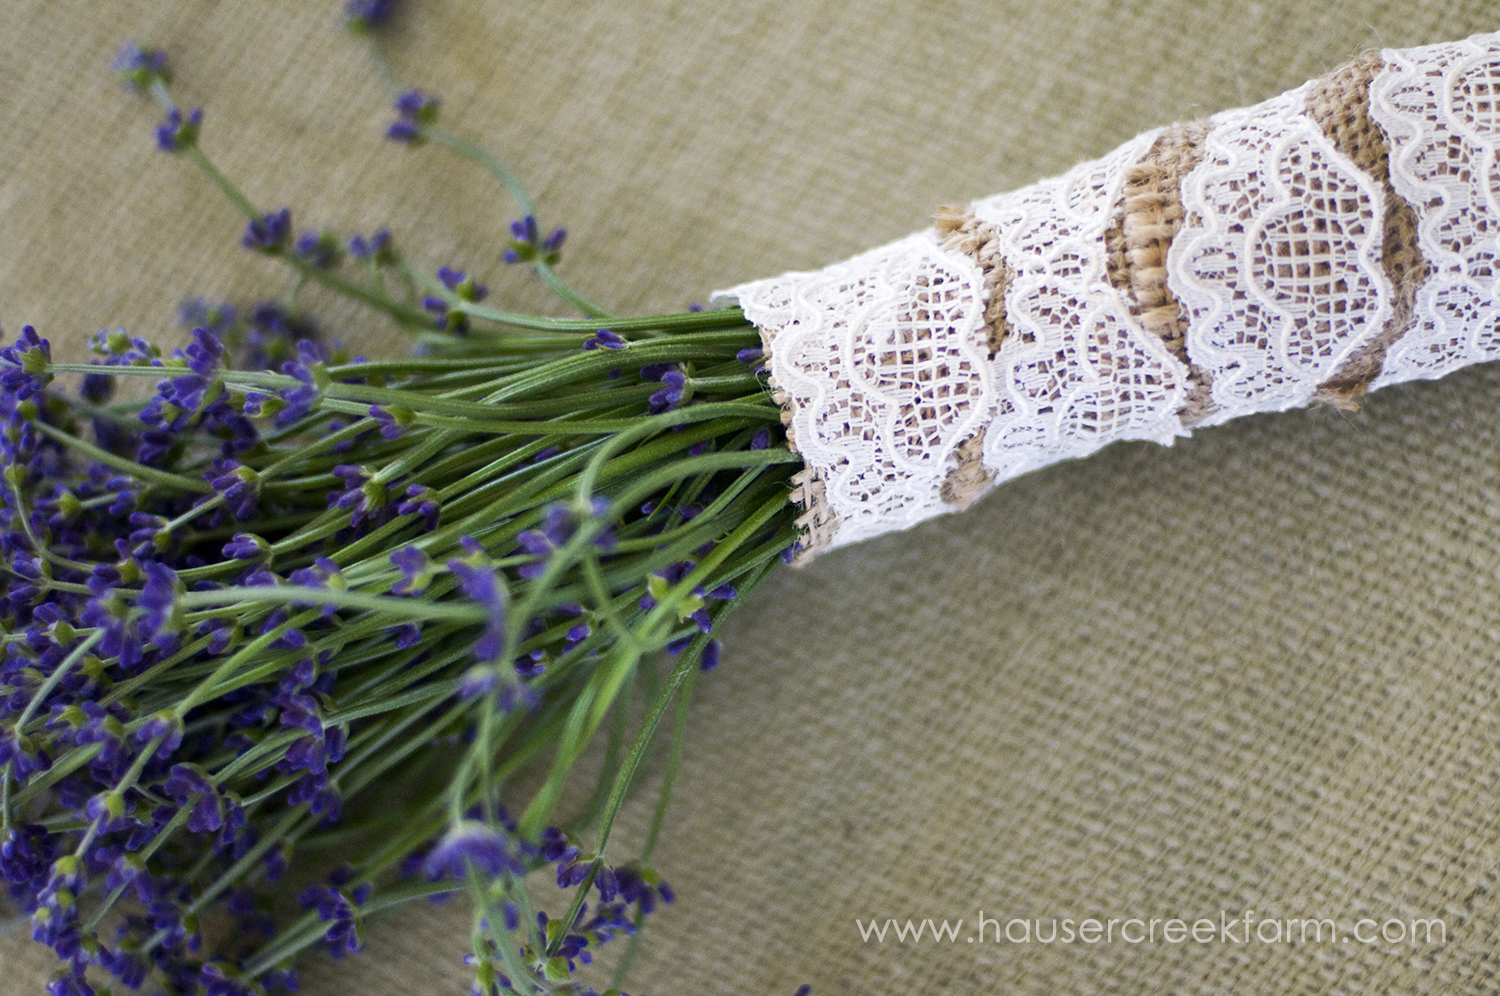 a-photo-of-fresh-lavender-bundle-wrapped-in-lace-by-ashley-06.jpg